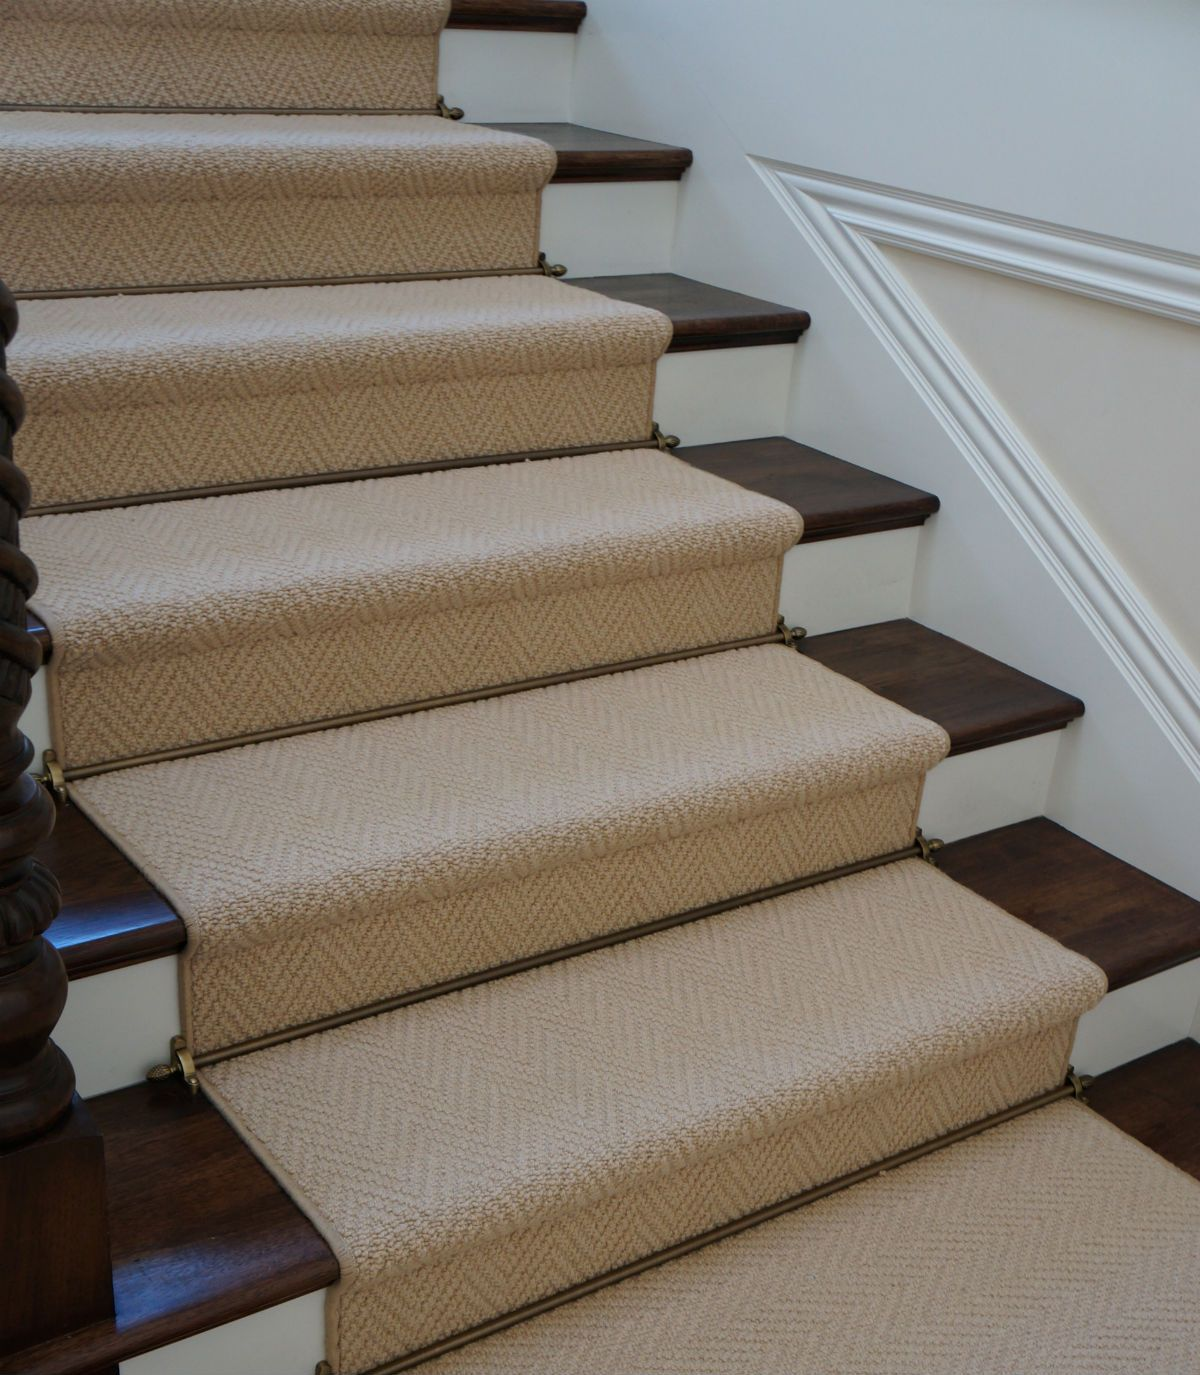 Install Carpet Runner Wood Stairs Stair Runners Seagrass Stair